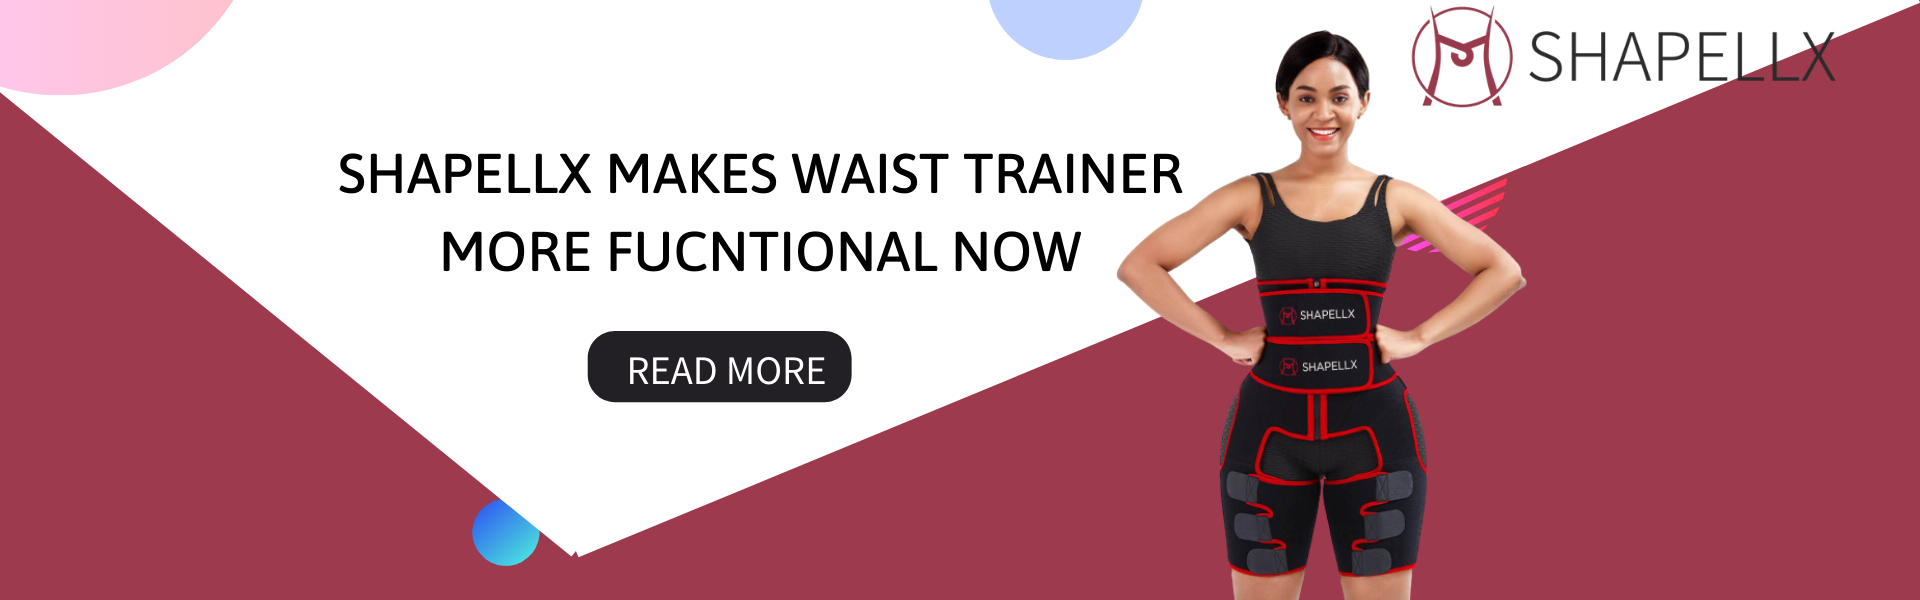 Shapellx Makes Waist Trainer More Functional Now